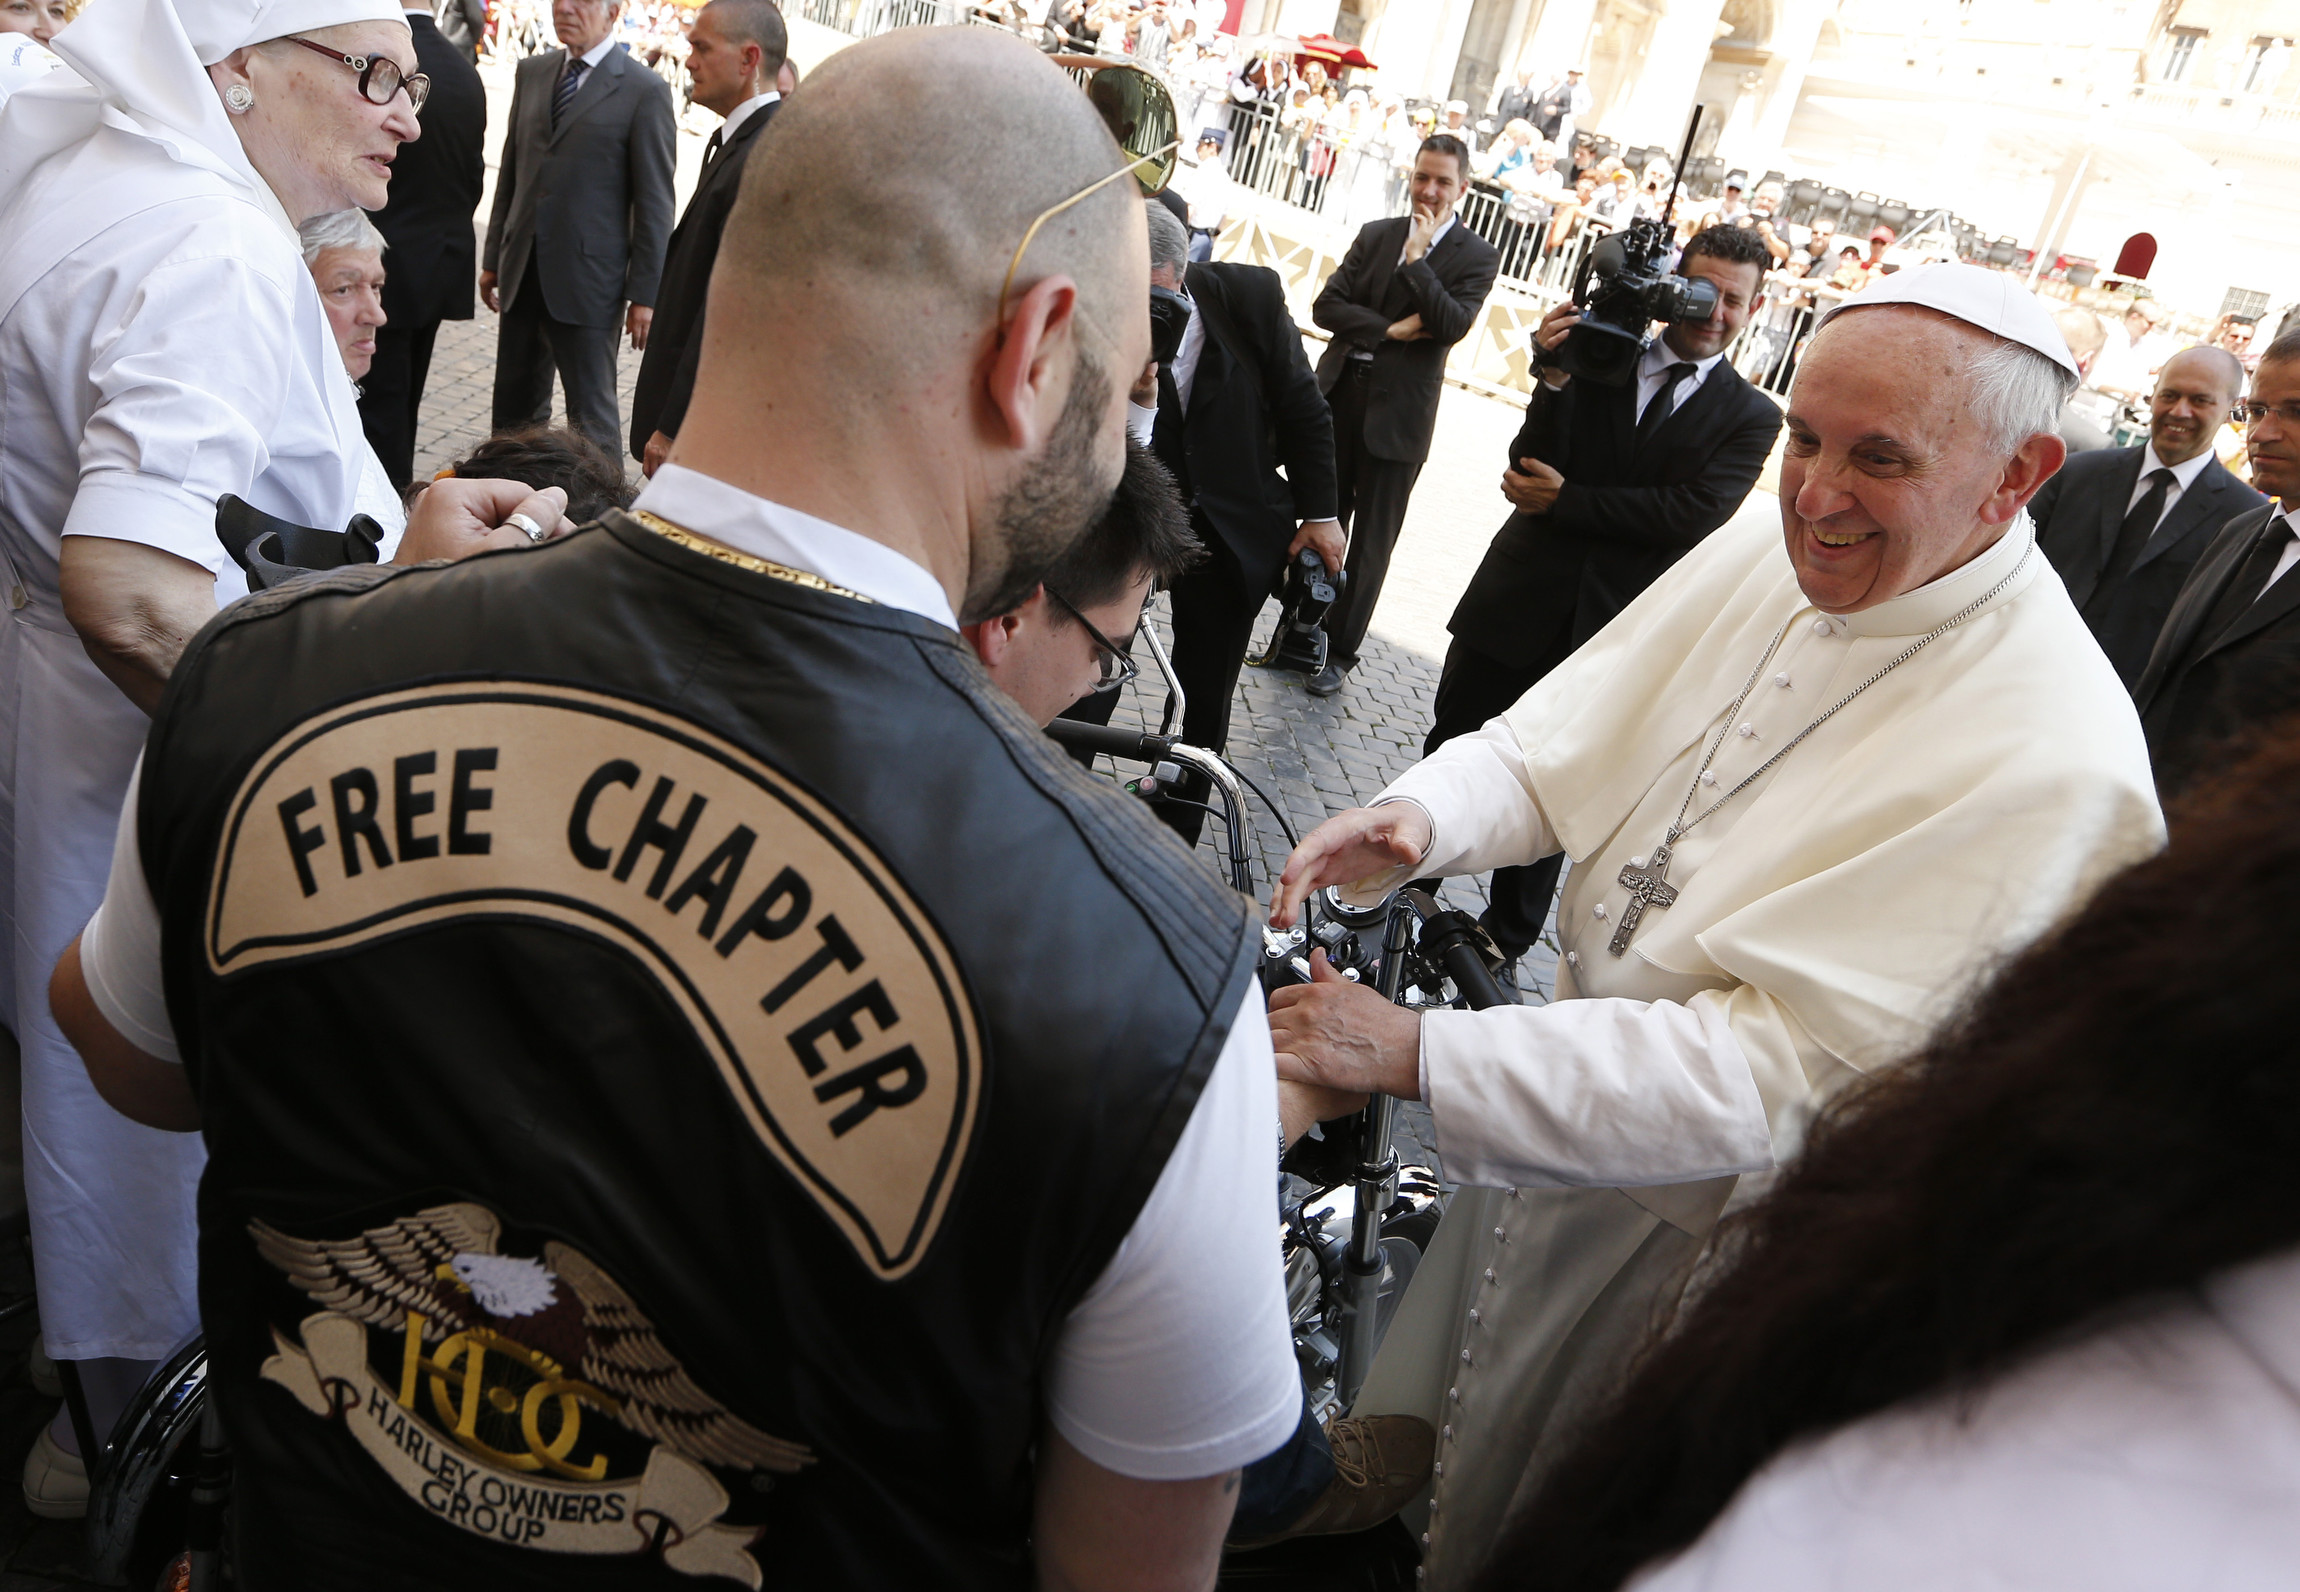 Pope harley owners jpg